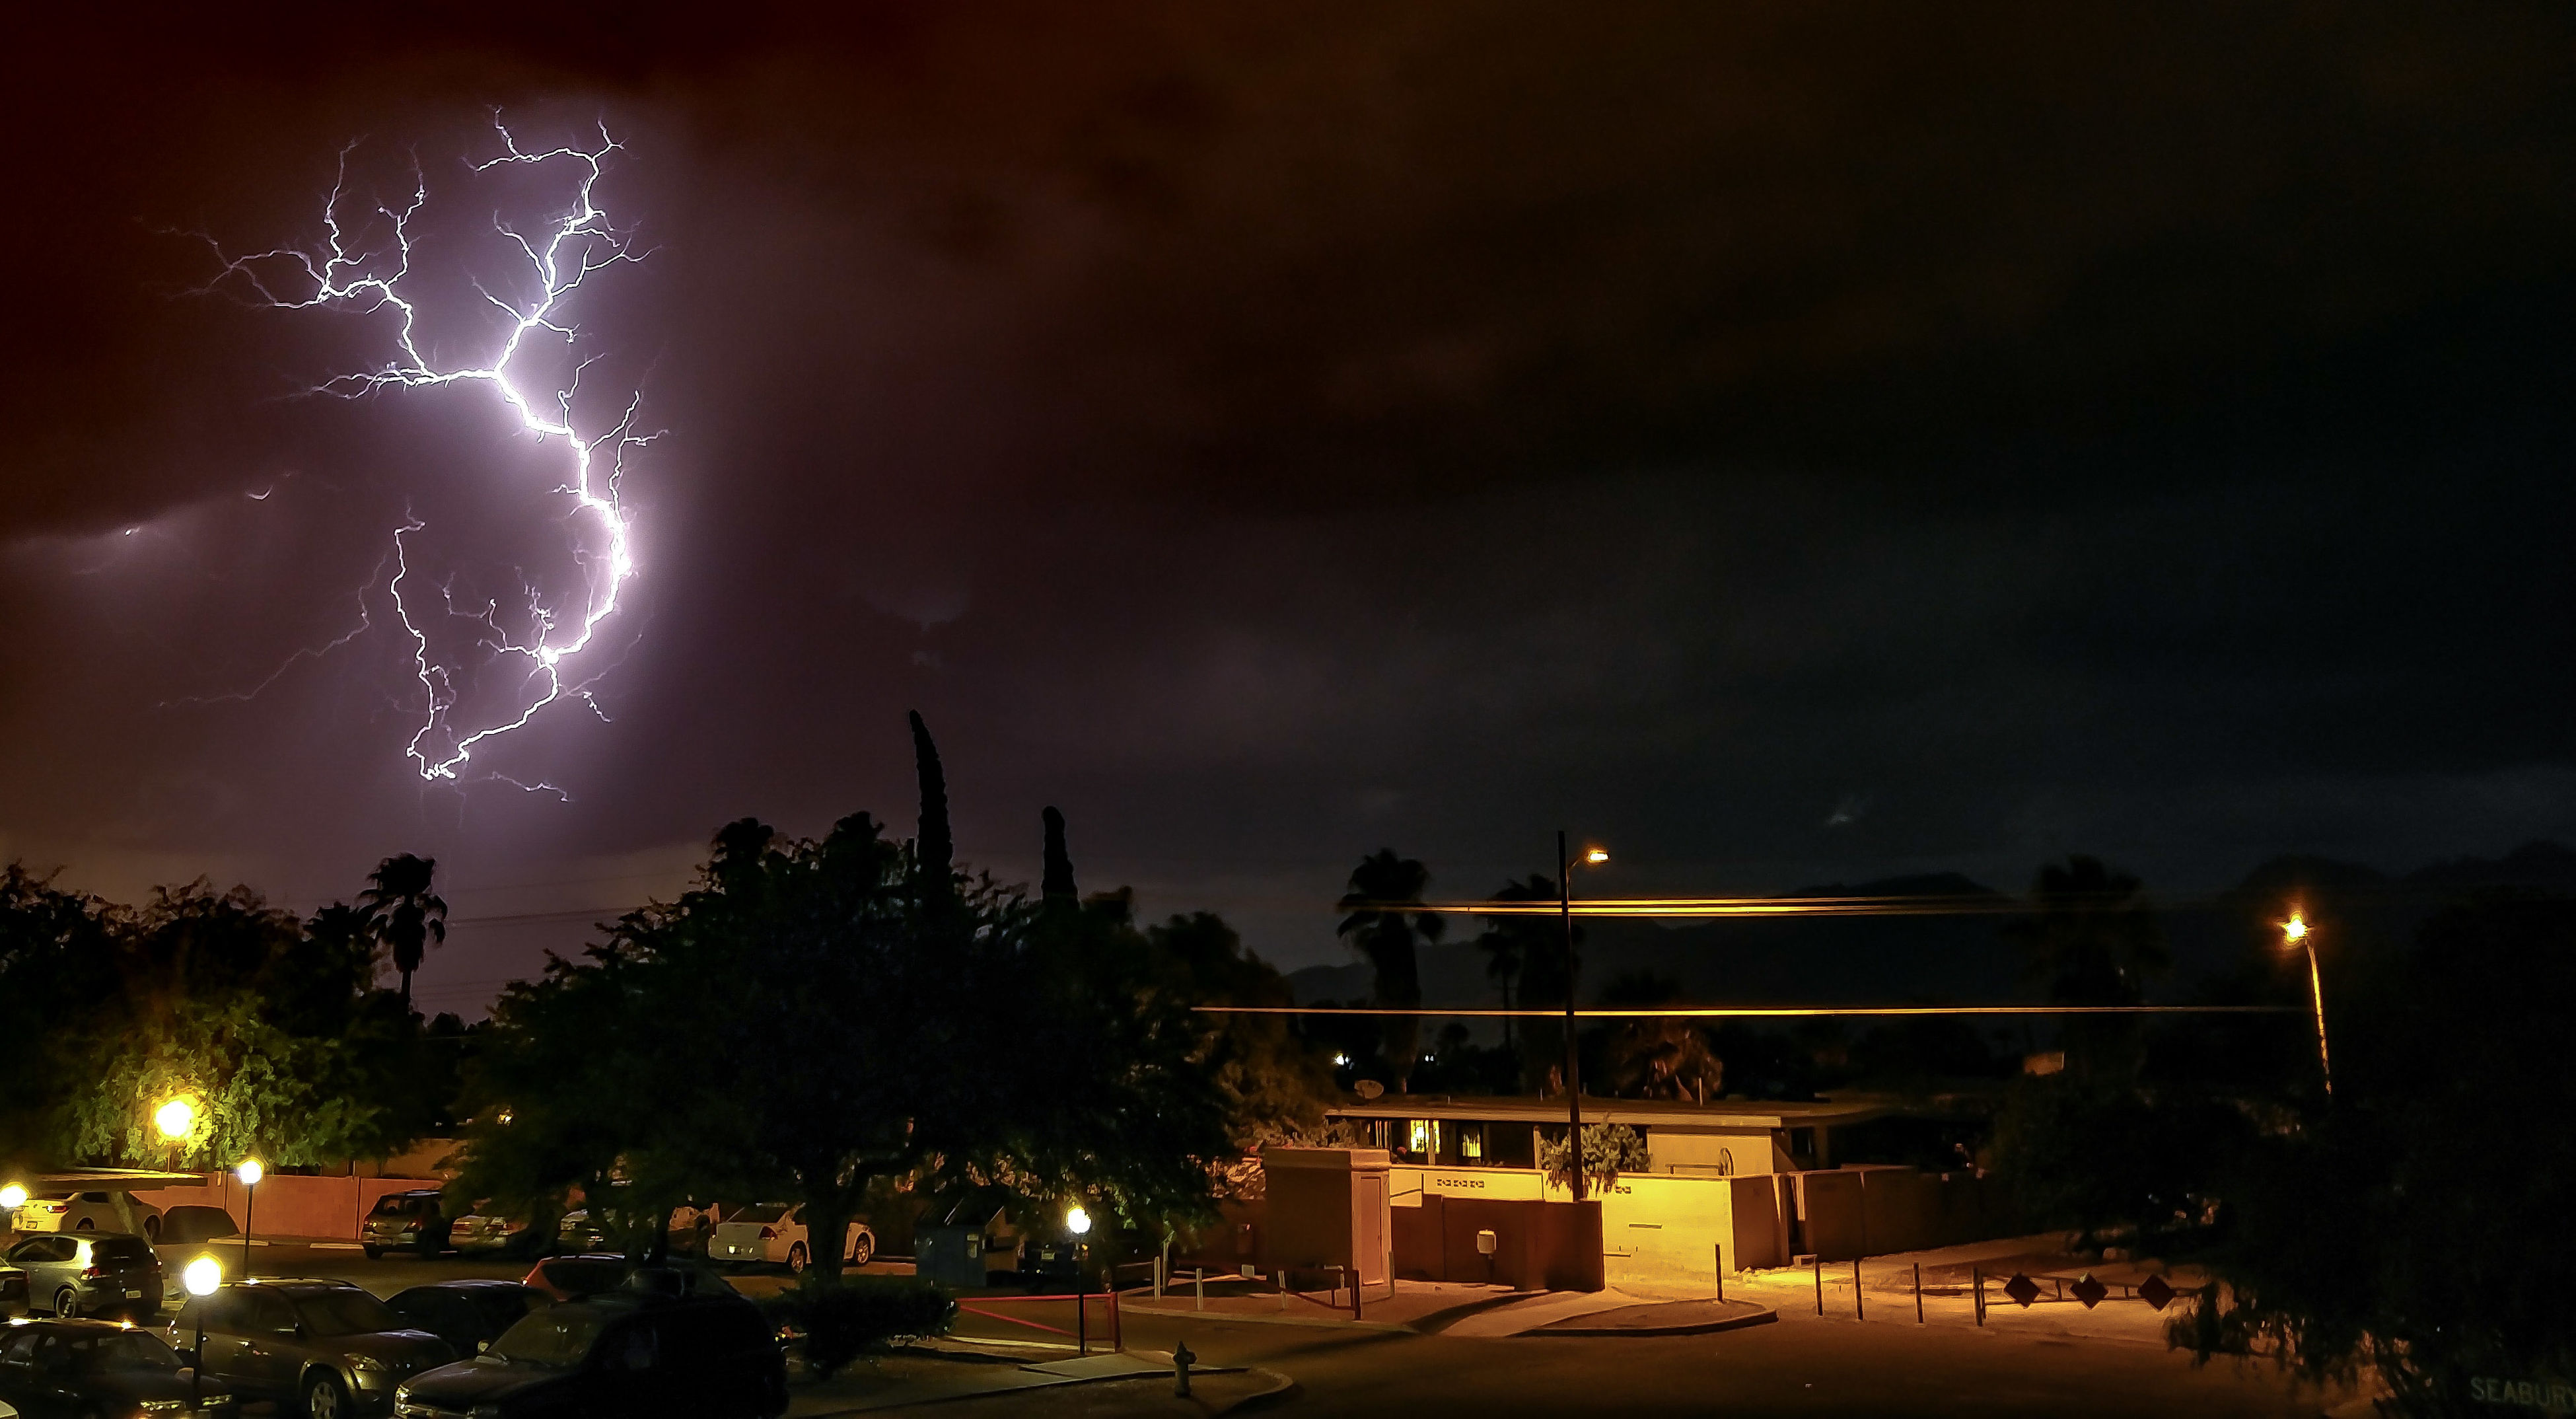 illuminated, night, tree, road, building exterior, celebration, architecture, built structure, firework - man made object, firework display, sky, exploding, outdoors, dark, lightning, sparks, place of worship, lit, tail light